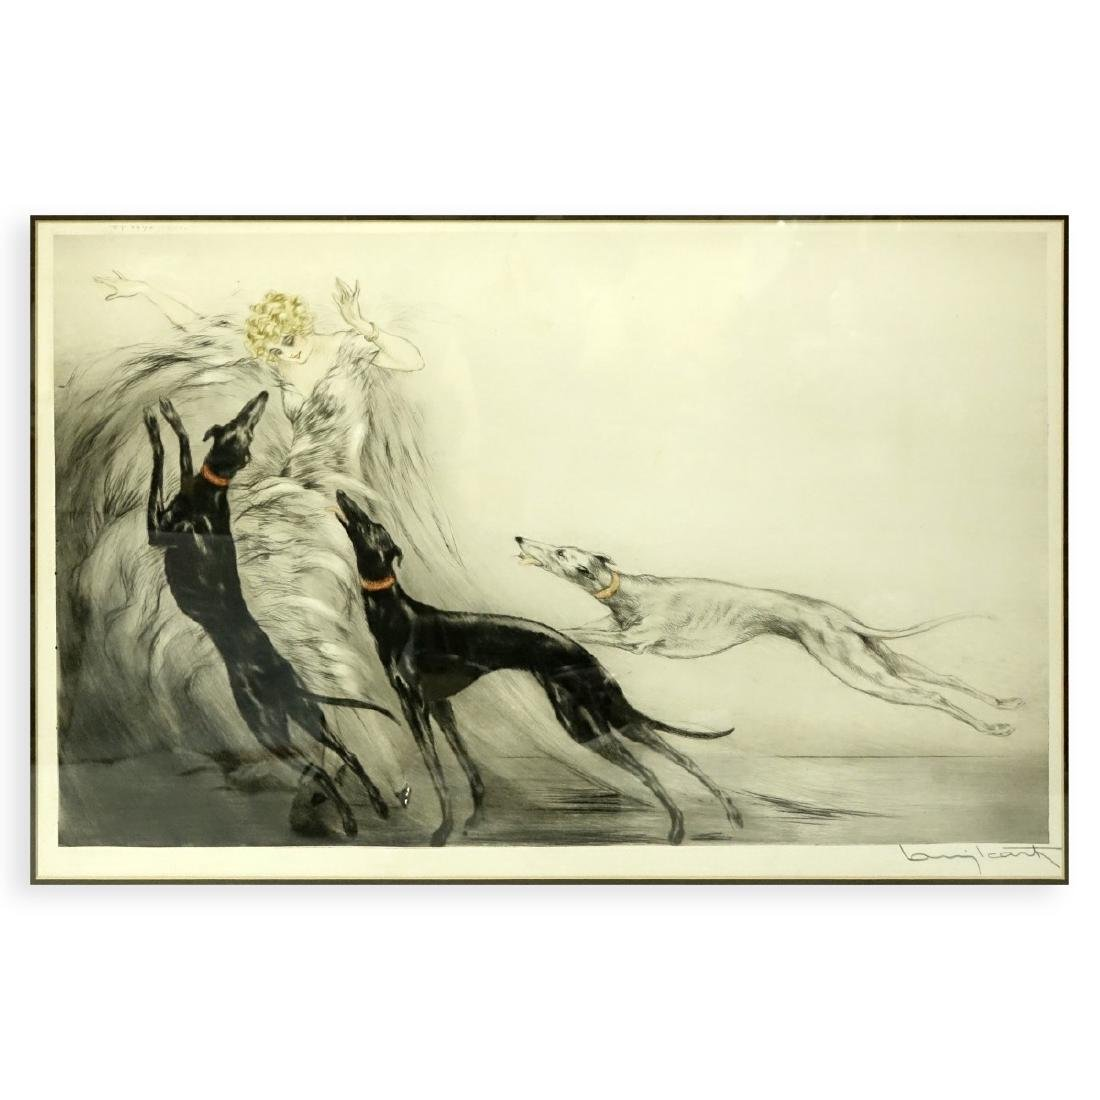 Louis Icart, French (1888 - 1950) Drypoint Etching